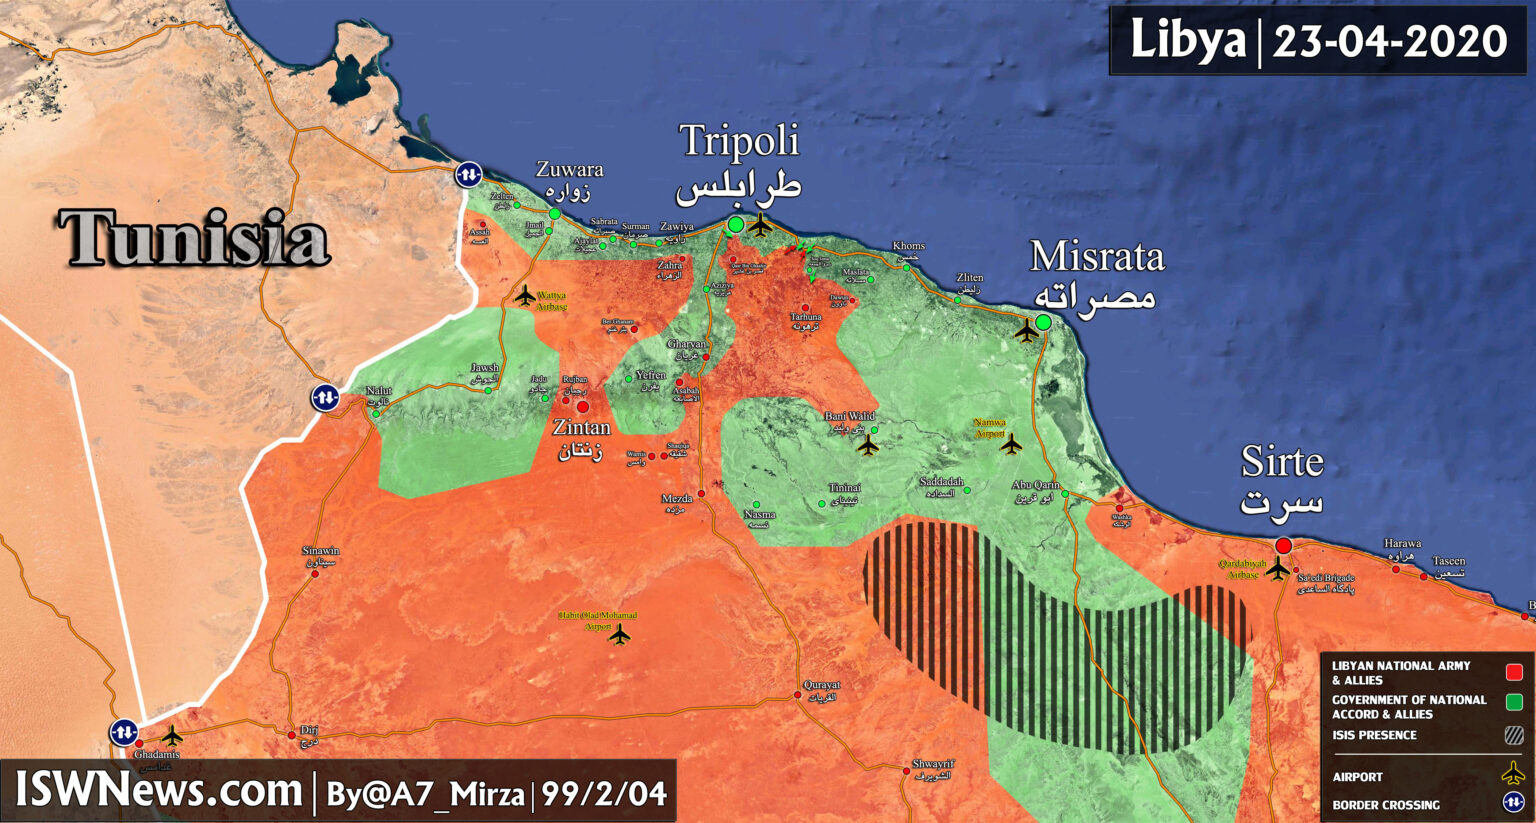 Libya Map Update: Military Situation In Tripoli Countryside